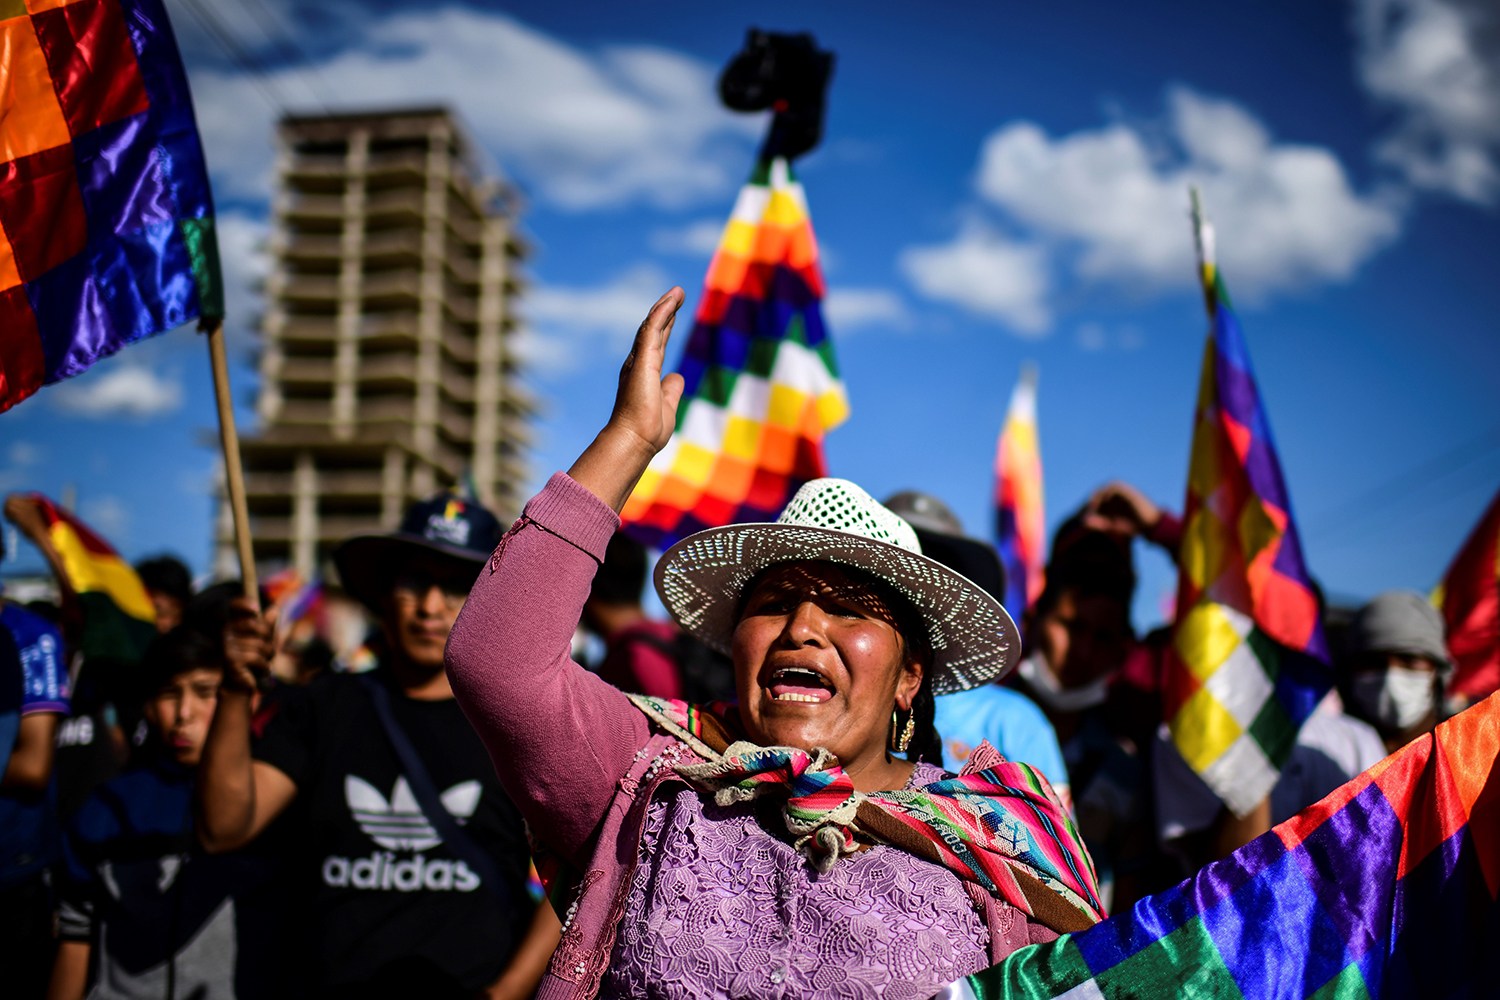 BOLIVIA | Supporters of former Bolivian President Evo Morales shout slogans during a demonstration in Cochabamba on Nov. 18. RONALDO SCHEMIDT/AFP via Getty Images